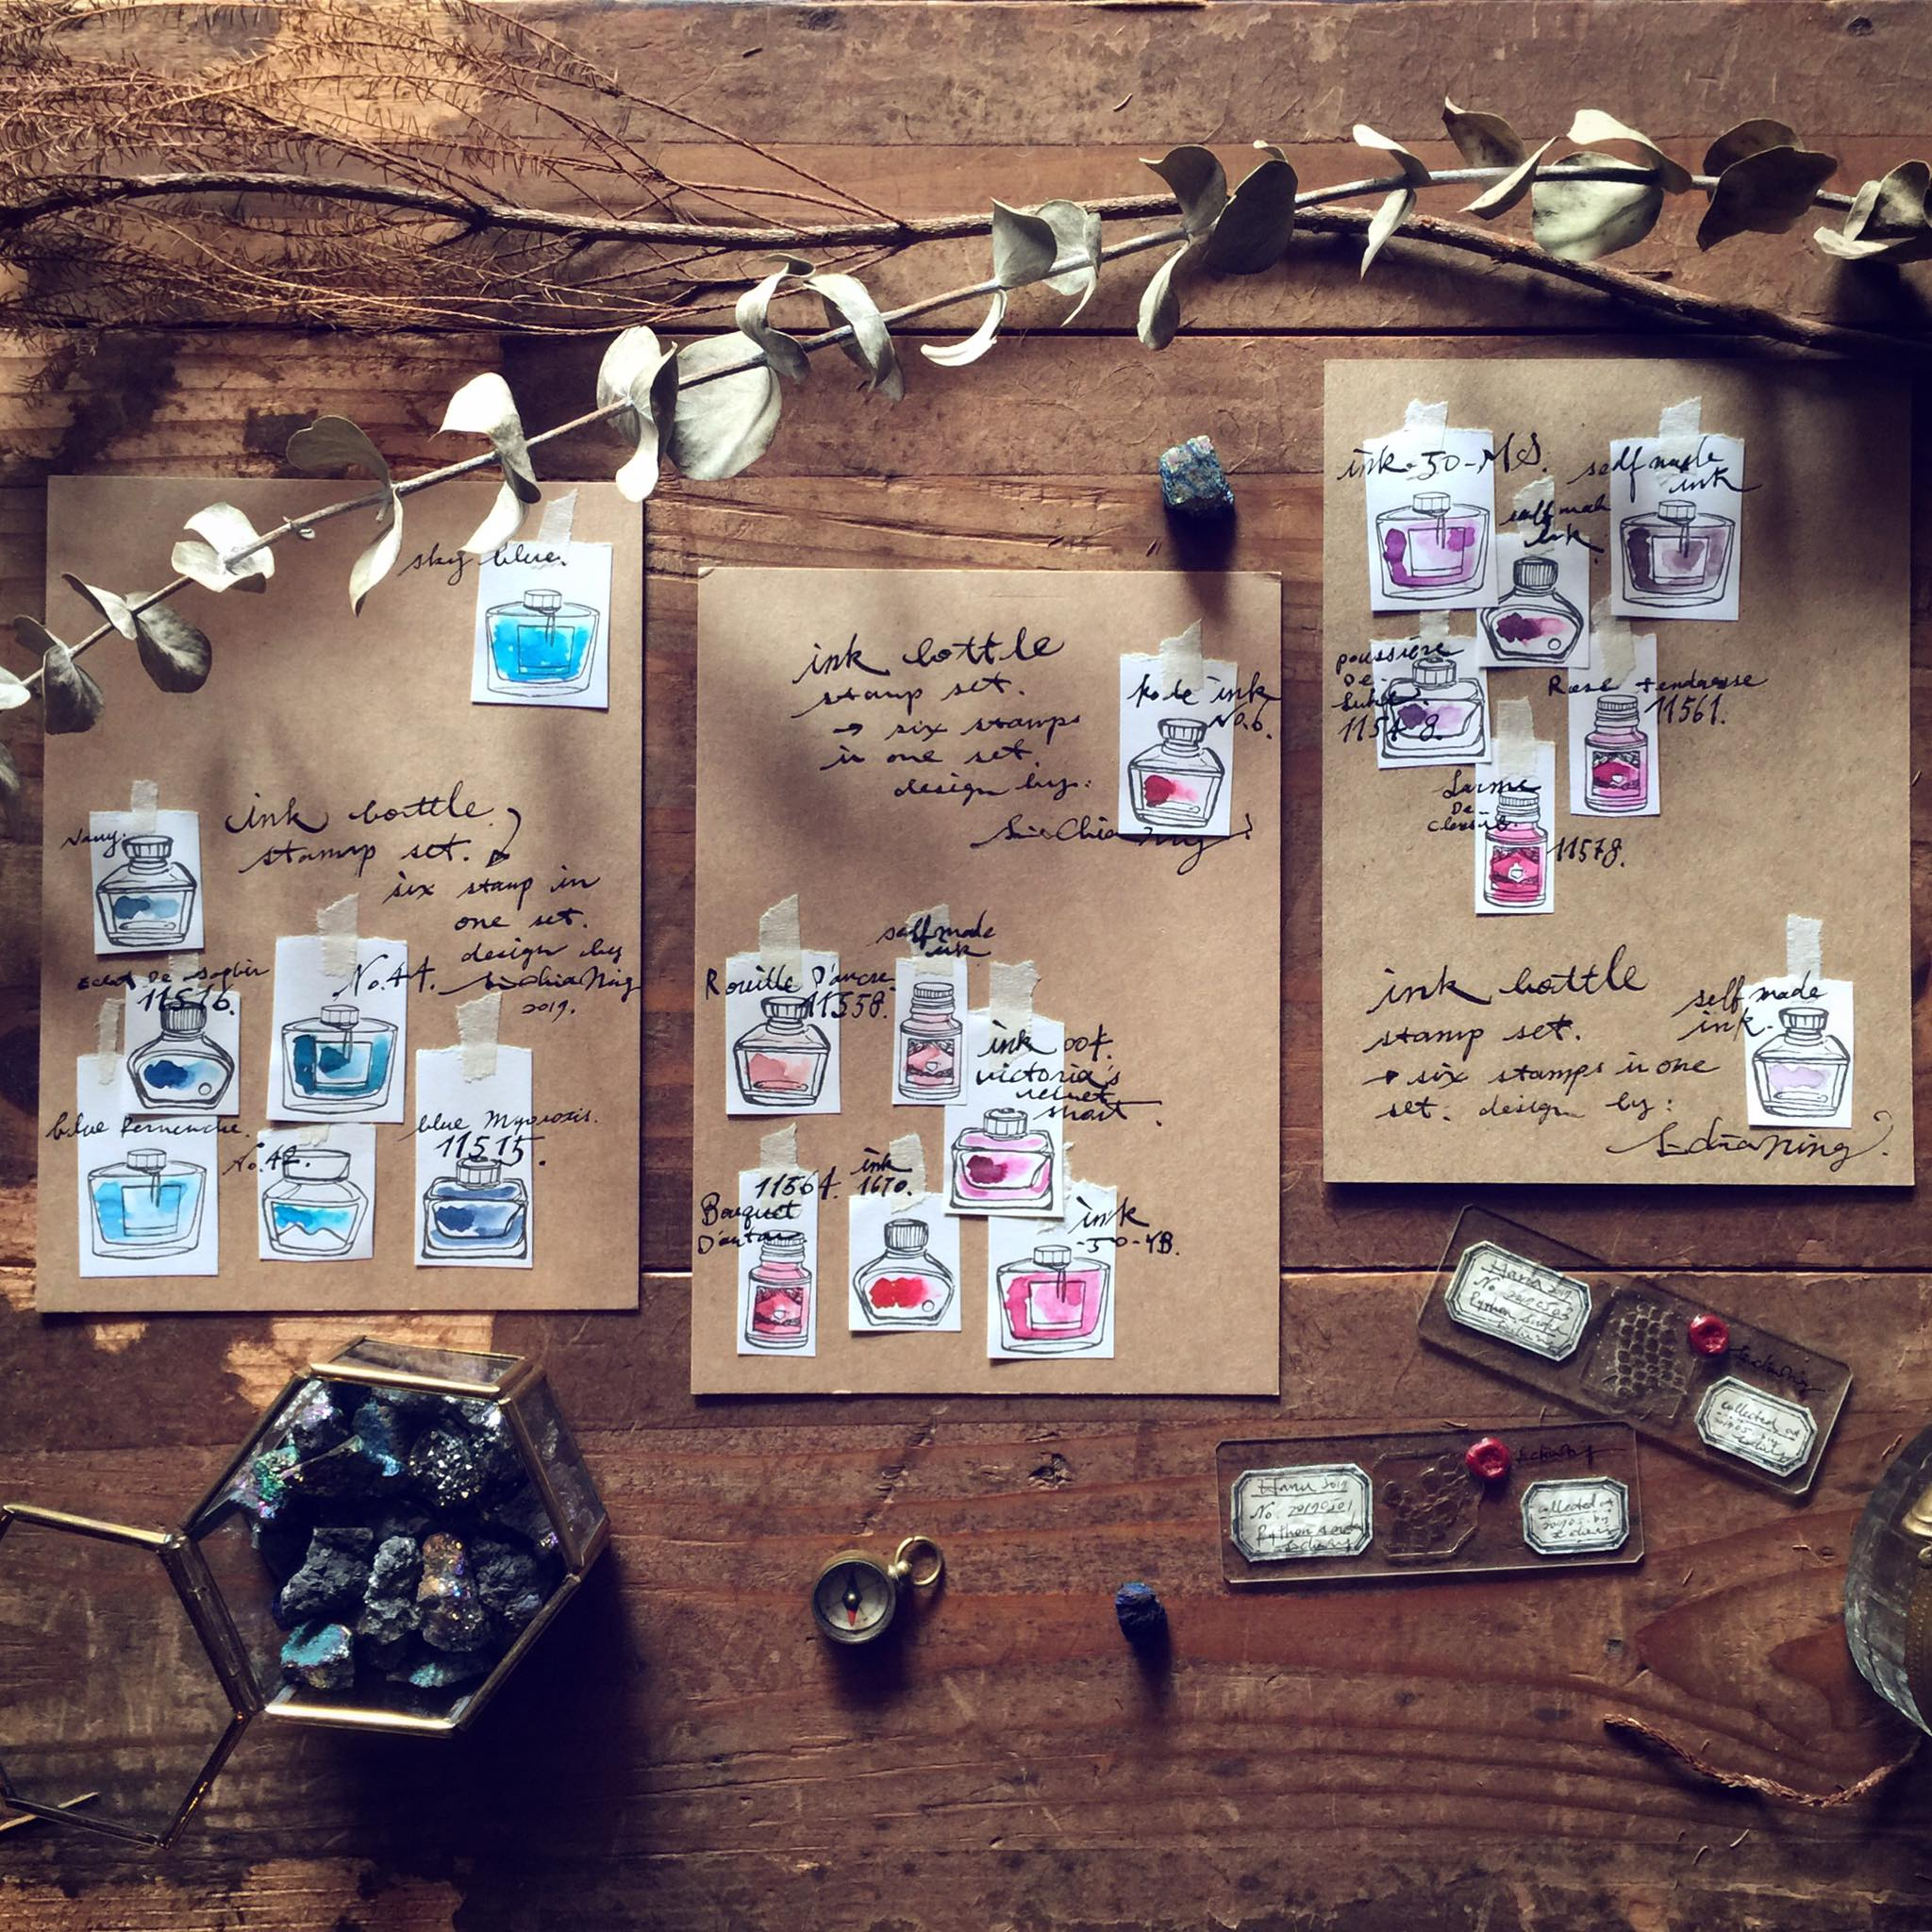 [Discontinued] LCN Ink Bottles Rubber Stamps Set